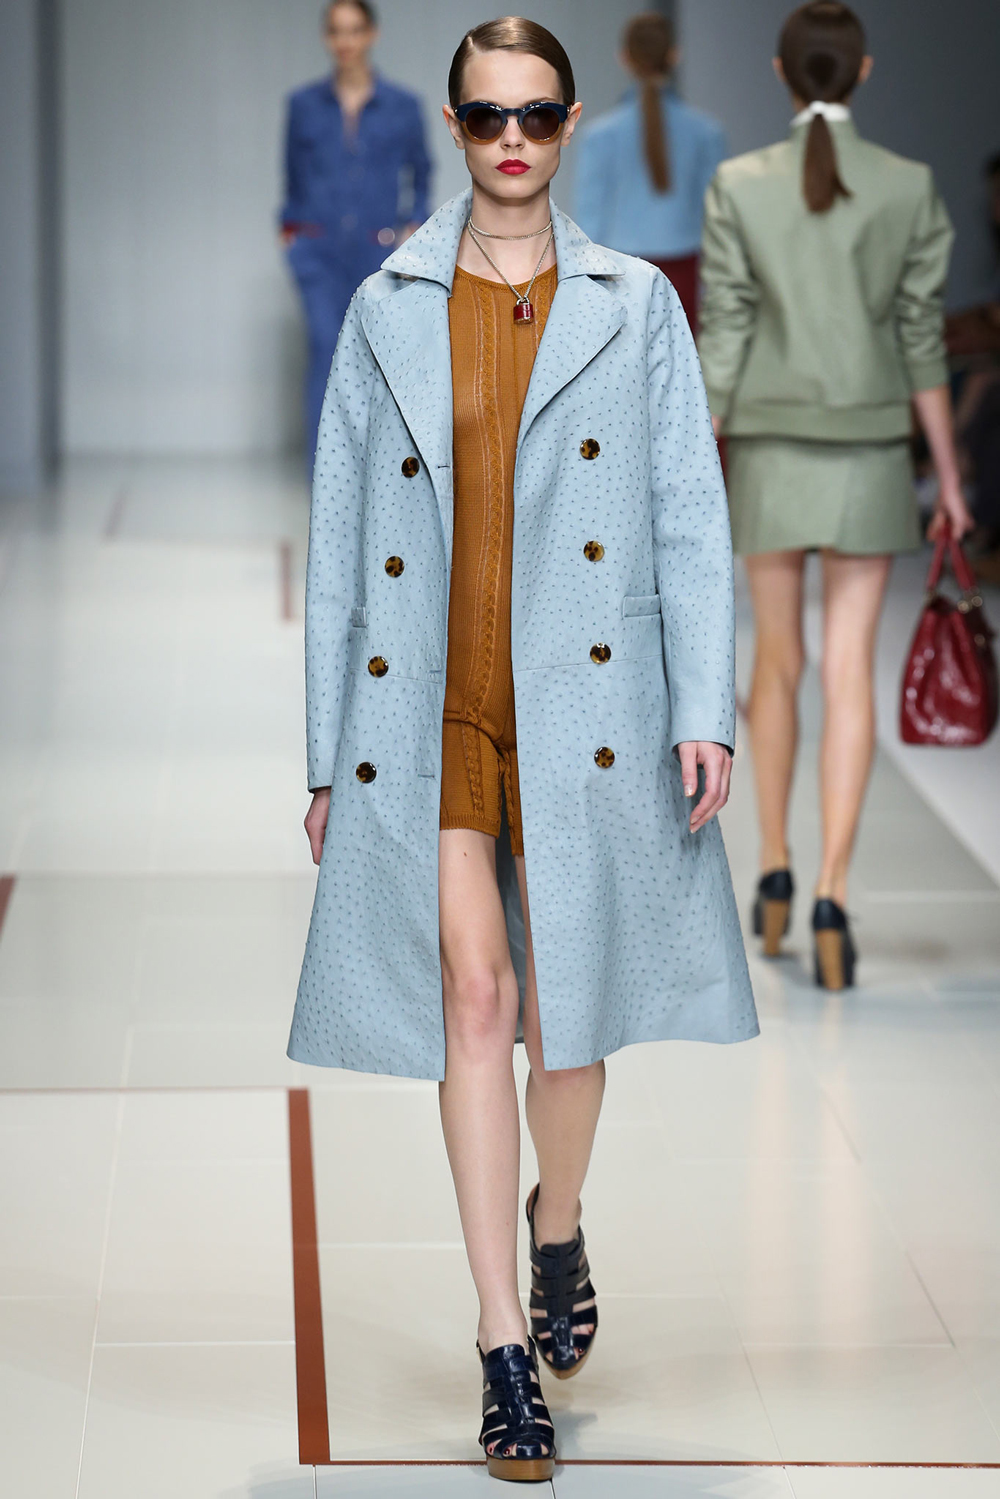 Pantone Colour Report Spring 2015 trends / aquamarine / how to wear aquamarine / outfit ideas / fashion collections S/S 2015 / Ferragamo Spring 2015 / via fashioned by love british fashion blog